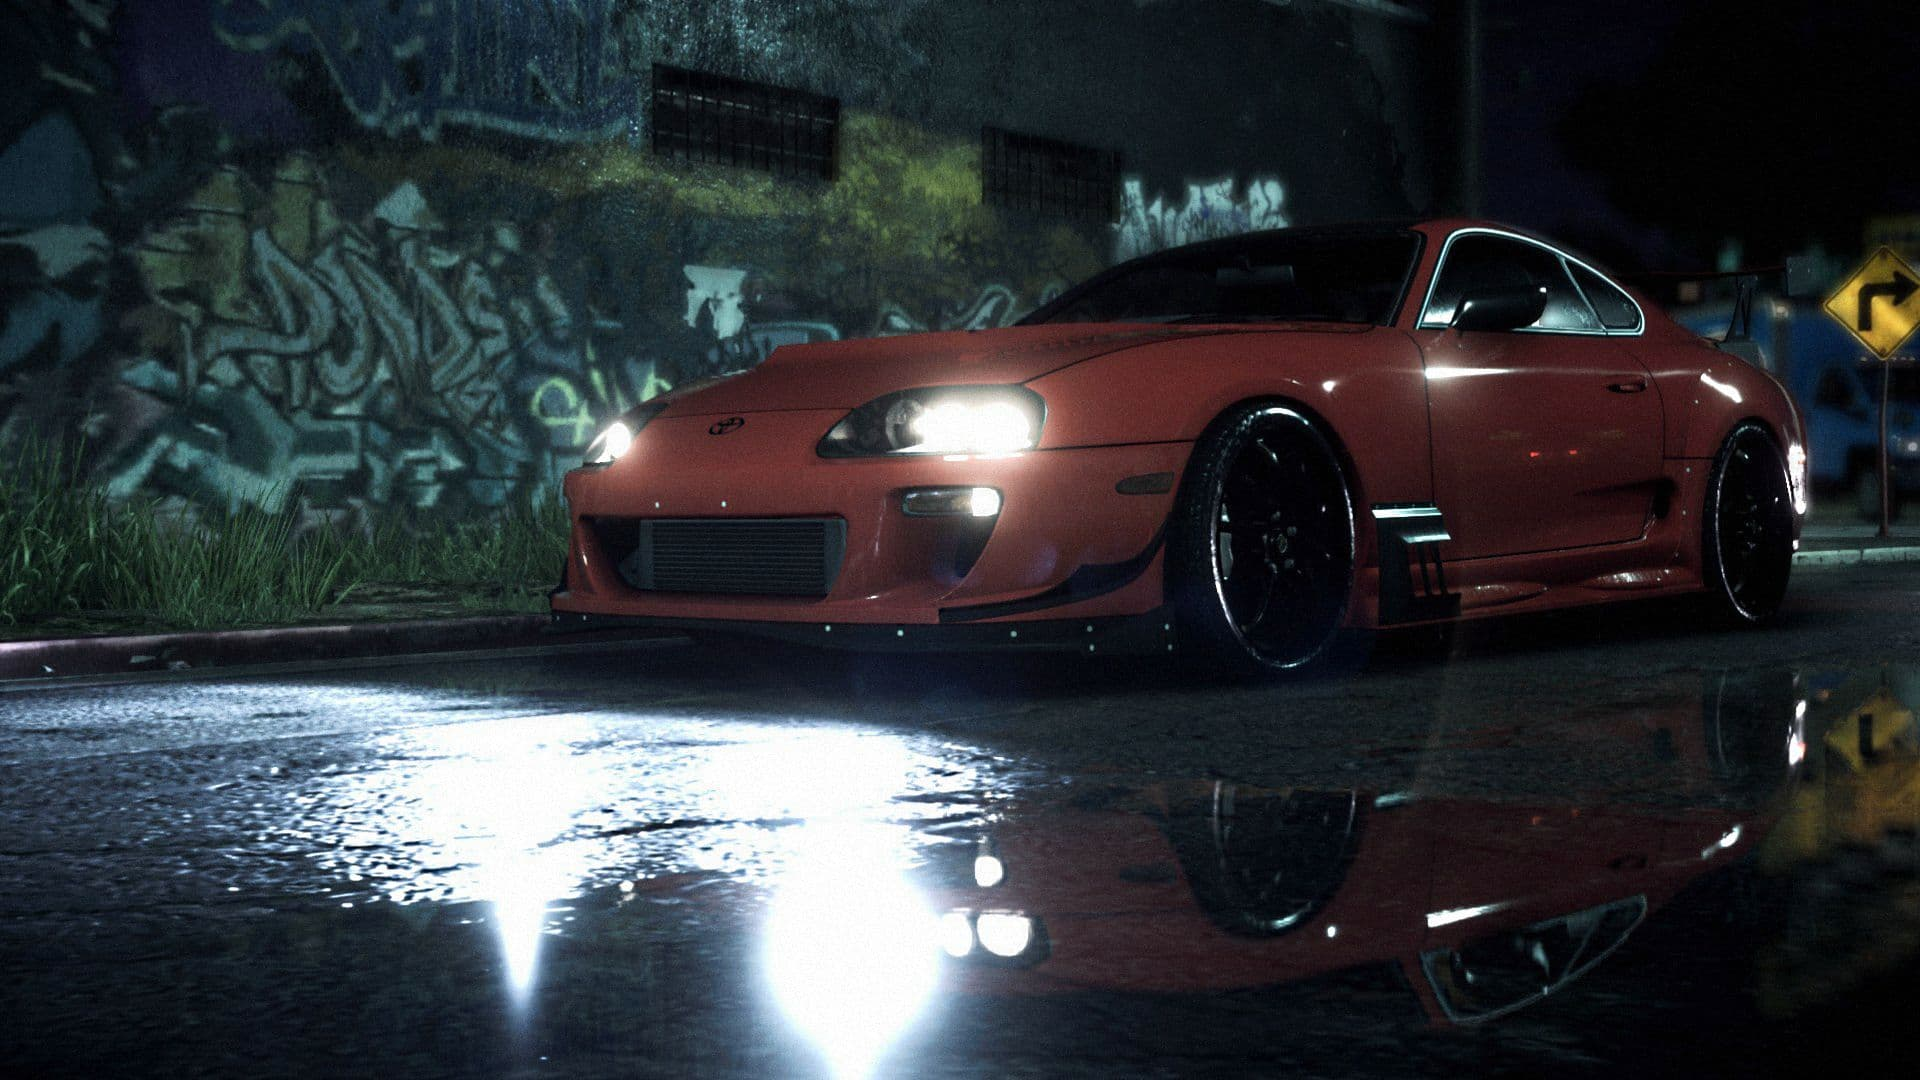 Toyota Supra jza80 from Need for speed